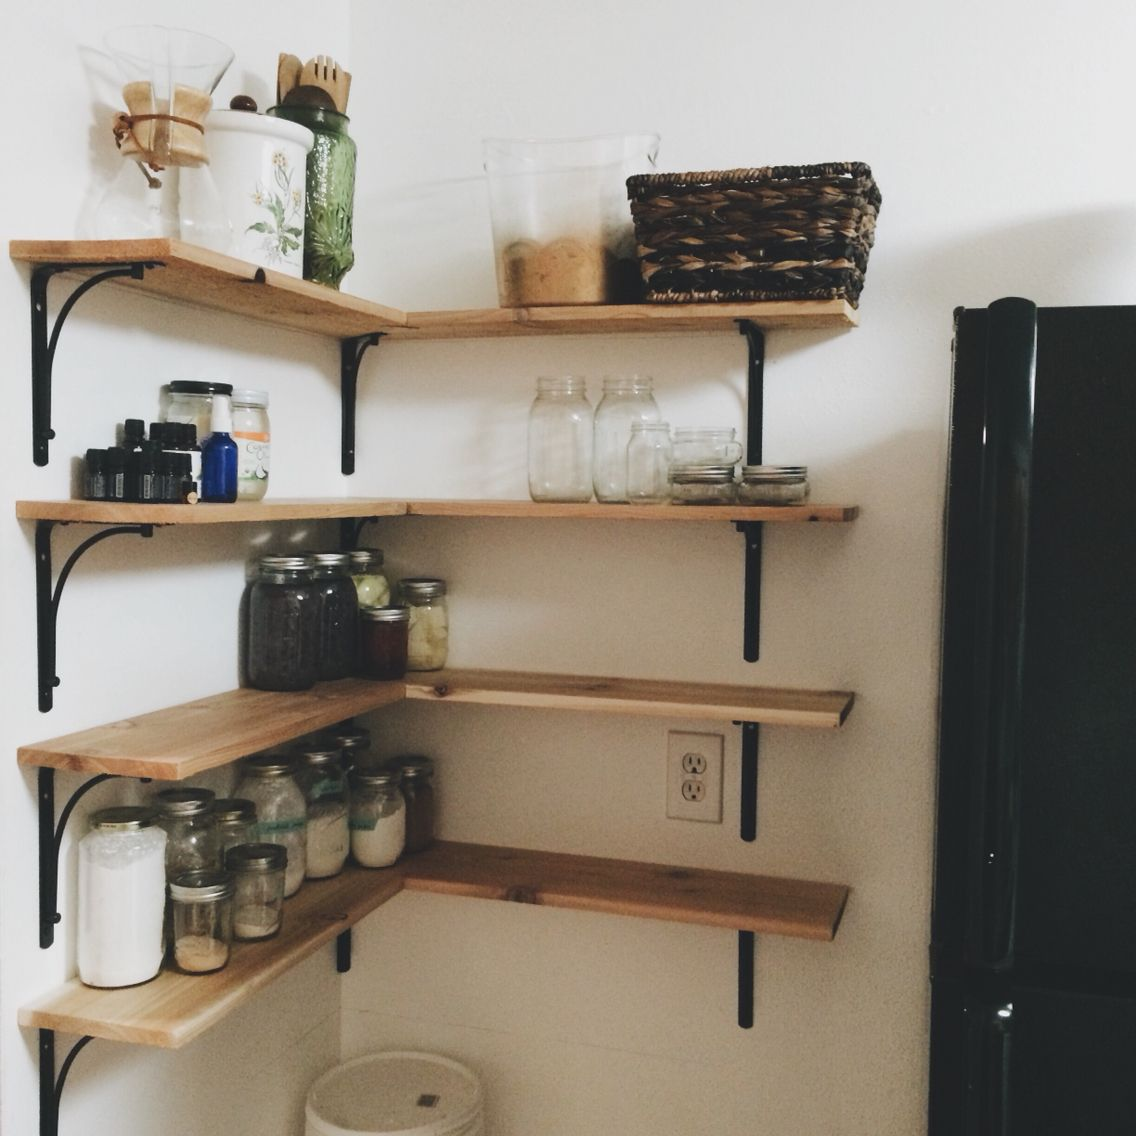 Cedar Shelves Built By My Husband To Make Use Of Some Corner